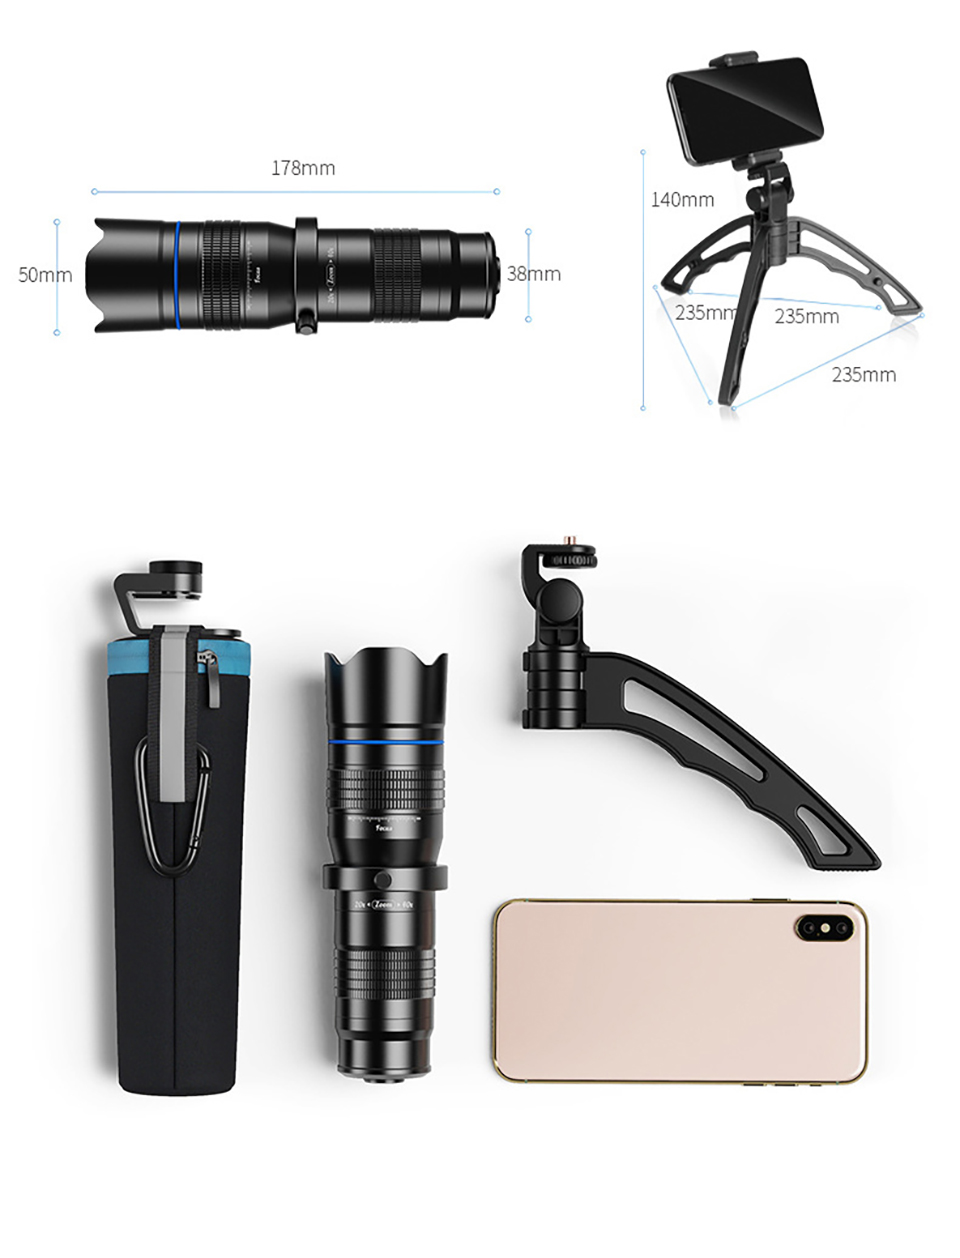 28X36X60 Zoom Monoculars Telescope Professional HD Powerful Photography High Magnification Zoom Binoculars Lens for Camping, (Telescope For Sale, Telescope For Adults, Telescope For Kids, Telescope For Beginners, Best Outdoor Telescope).